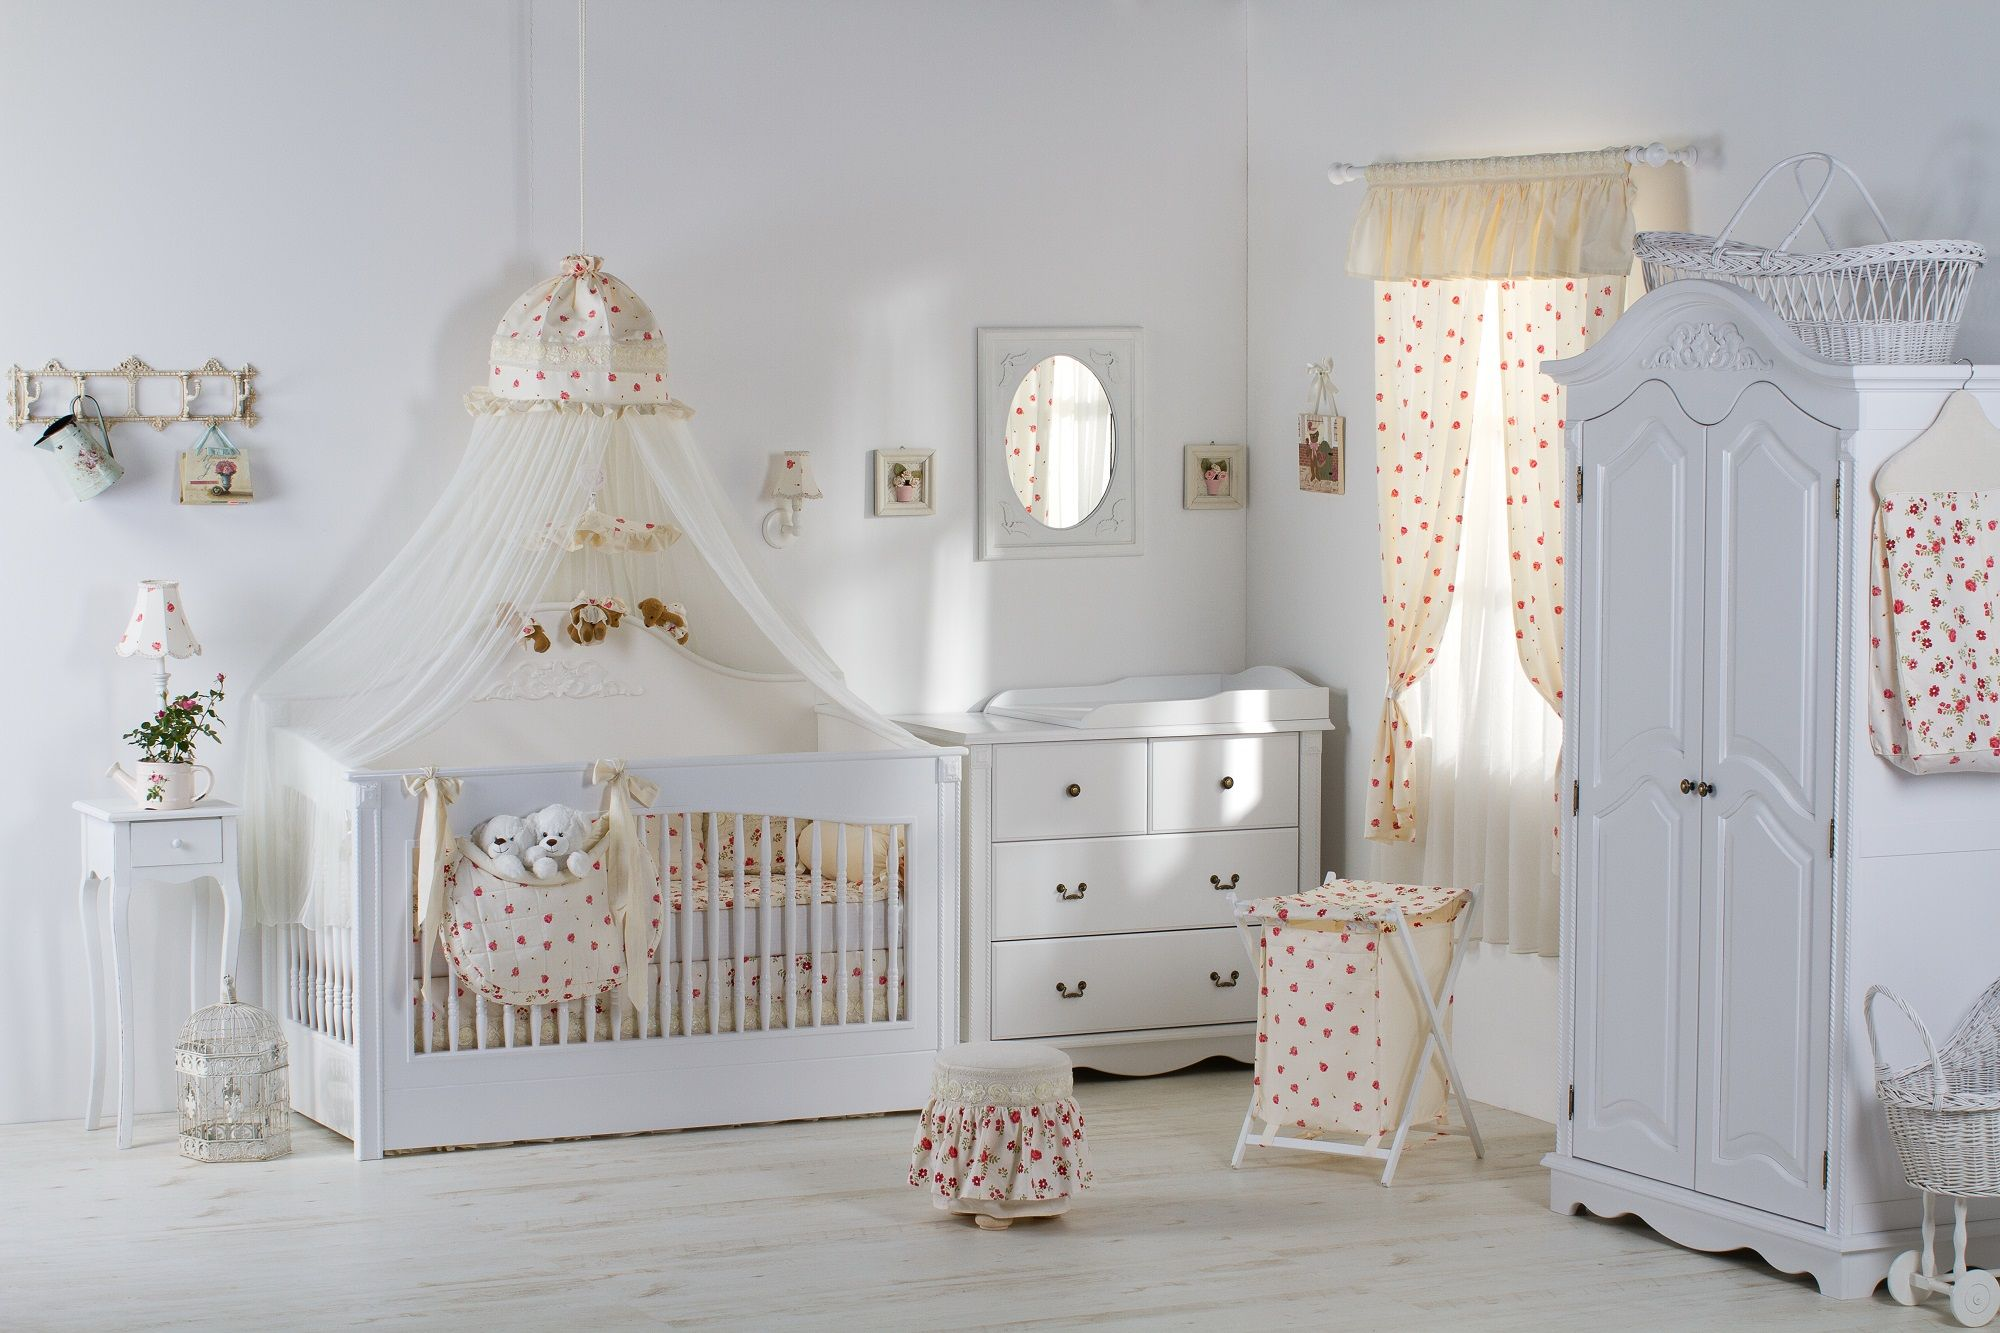 Beauty And Safe Baby Room Decoration With Hanging Curtain Spinning Toy Above The Crib Also